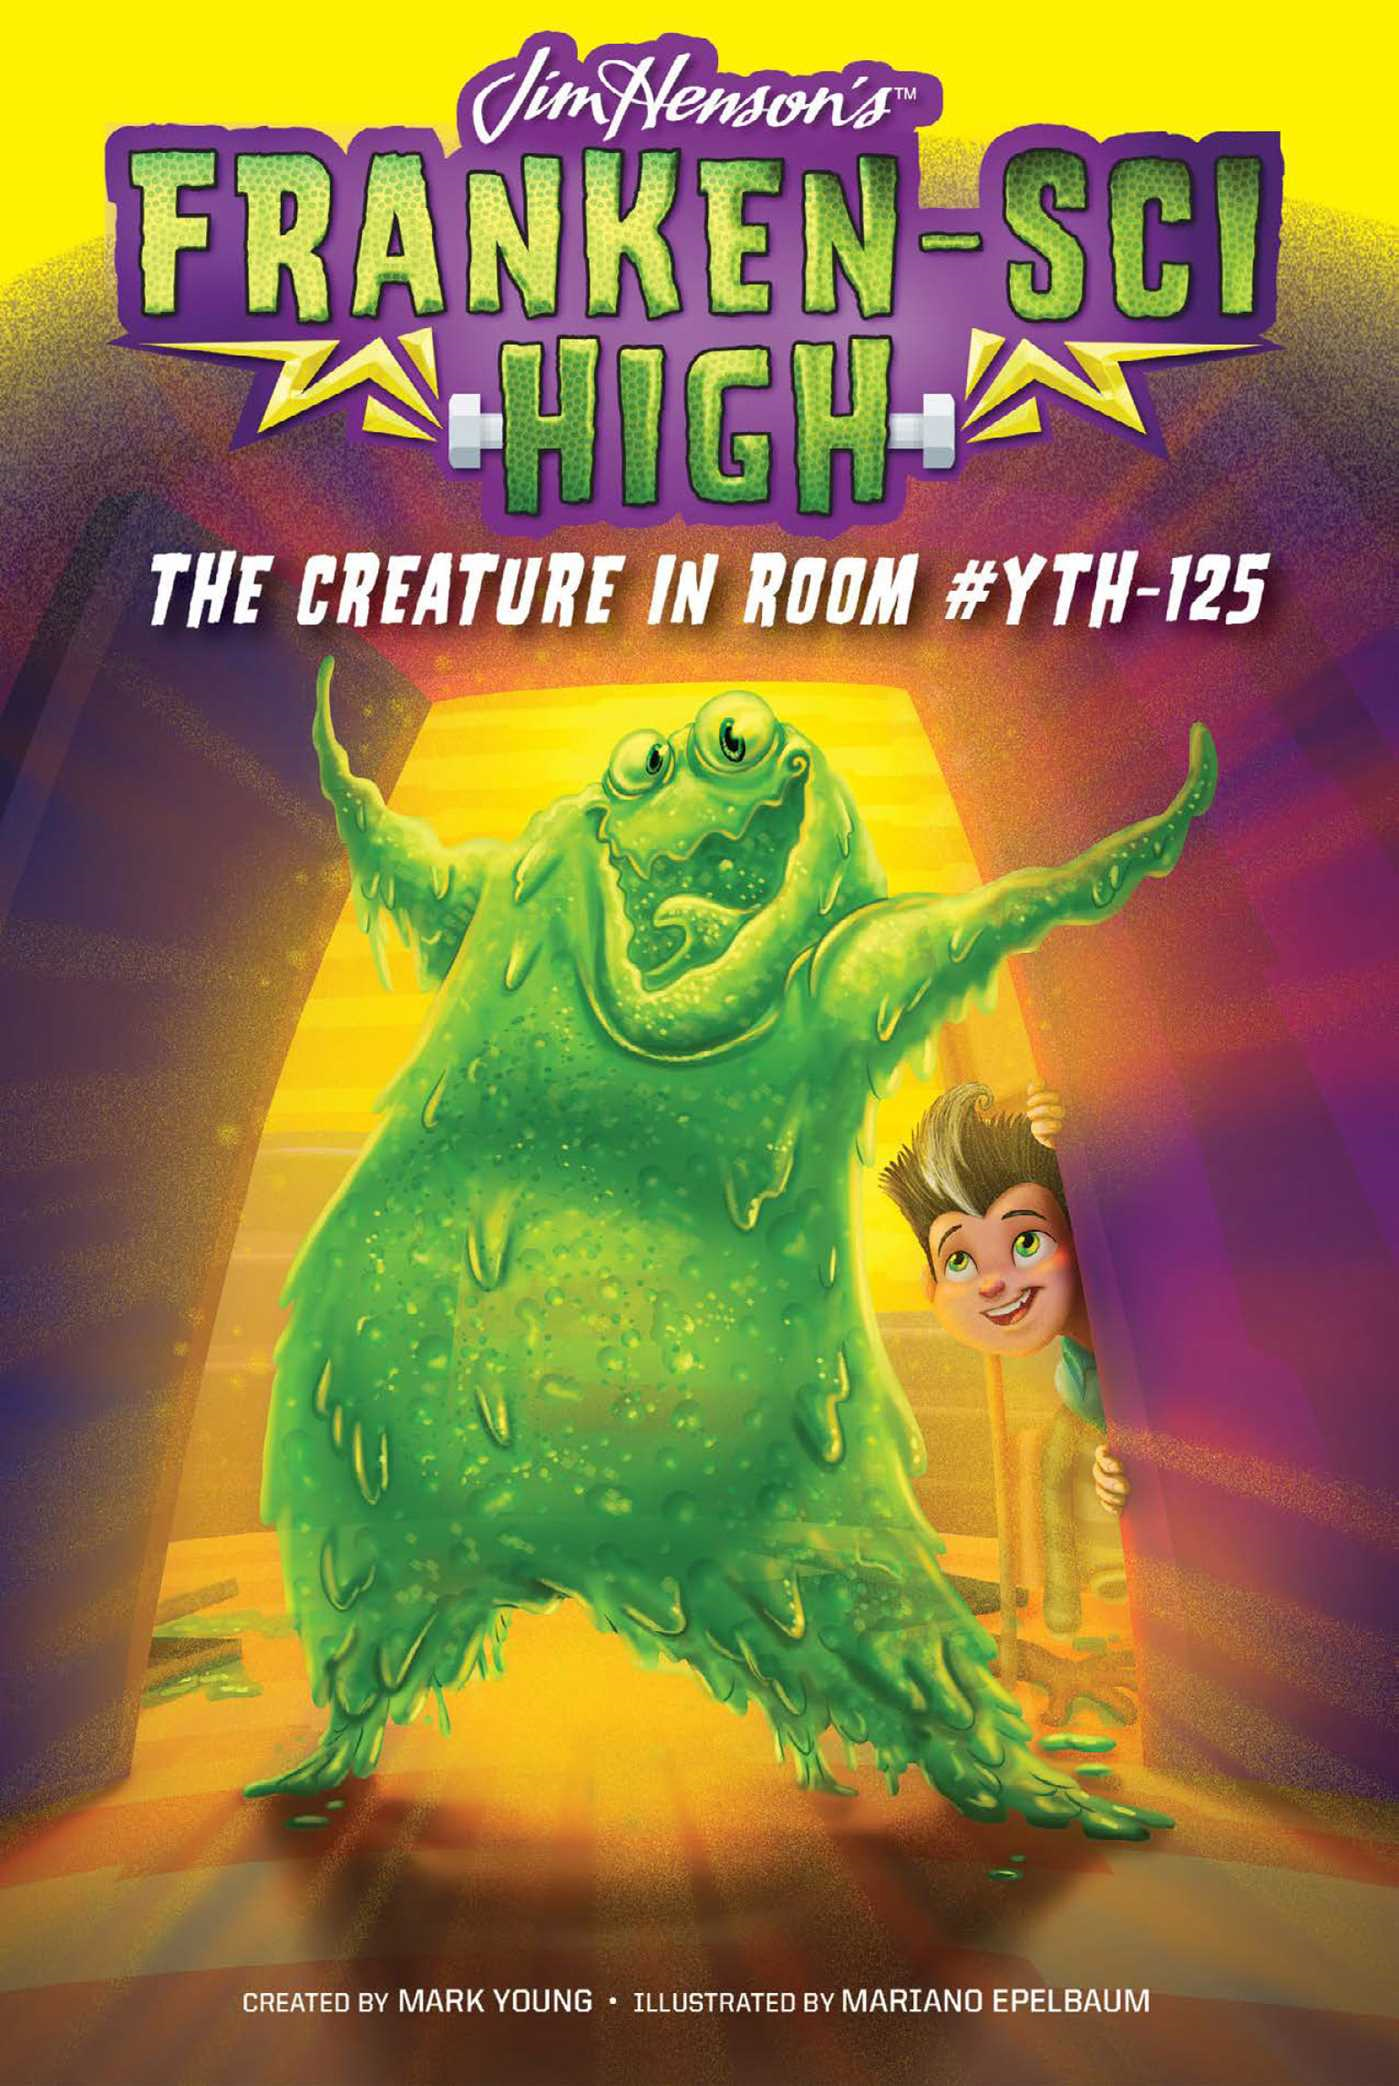 The Creature in Room #YTH-125